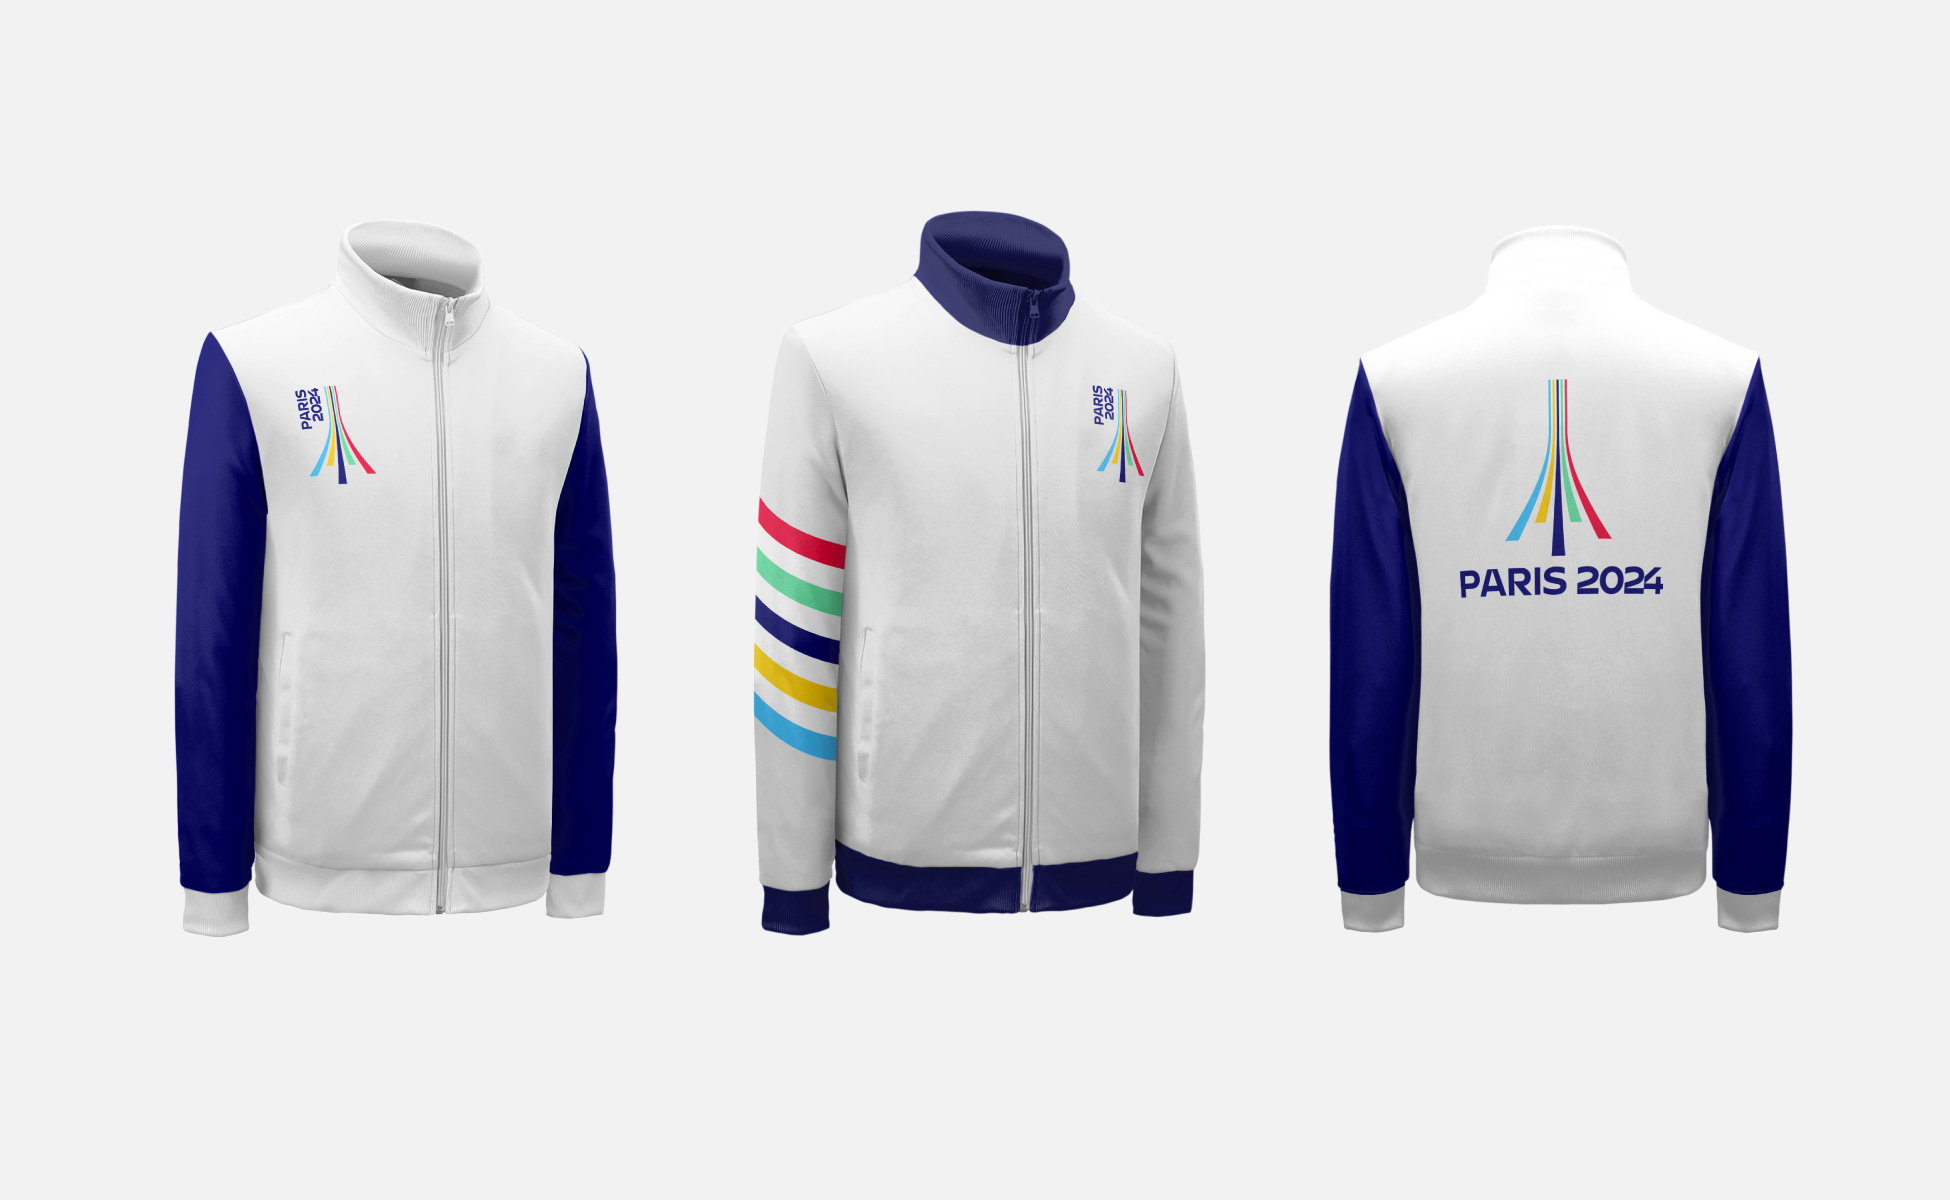 vêtements sportswear olympic